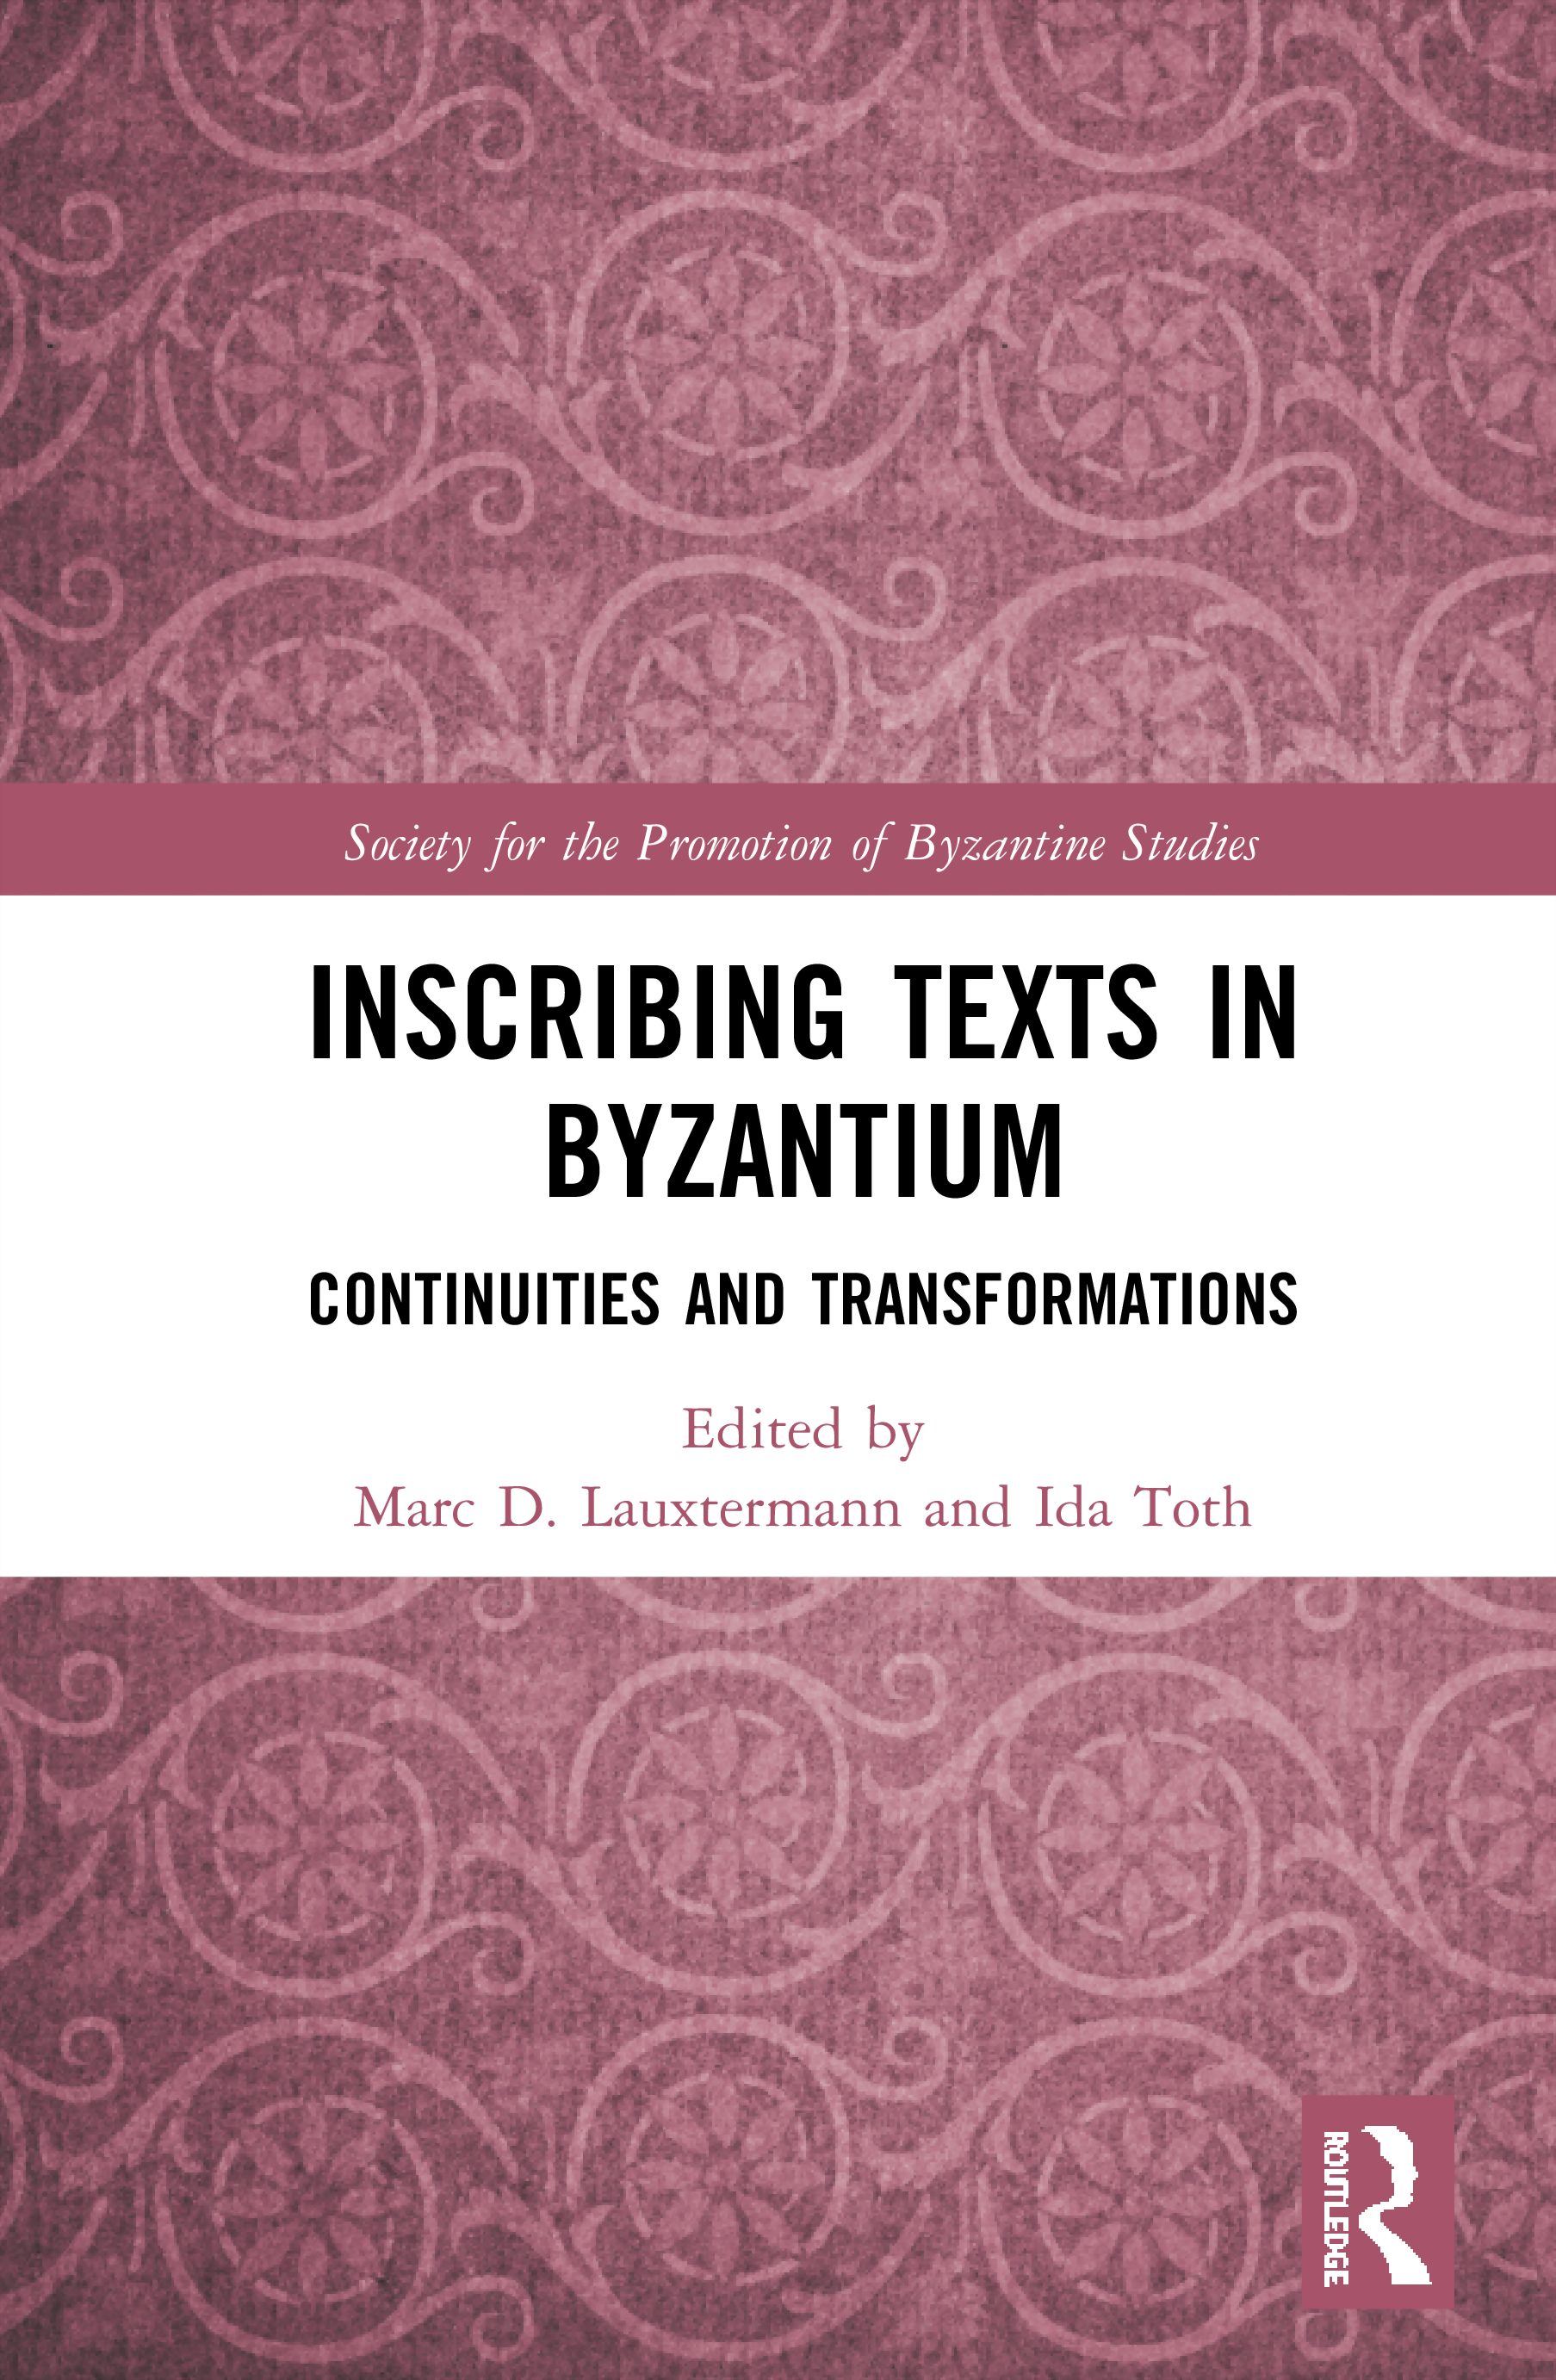 Inscribing Texts in Byzantium: Continuities and Transformations book cover